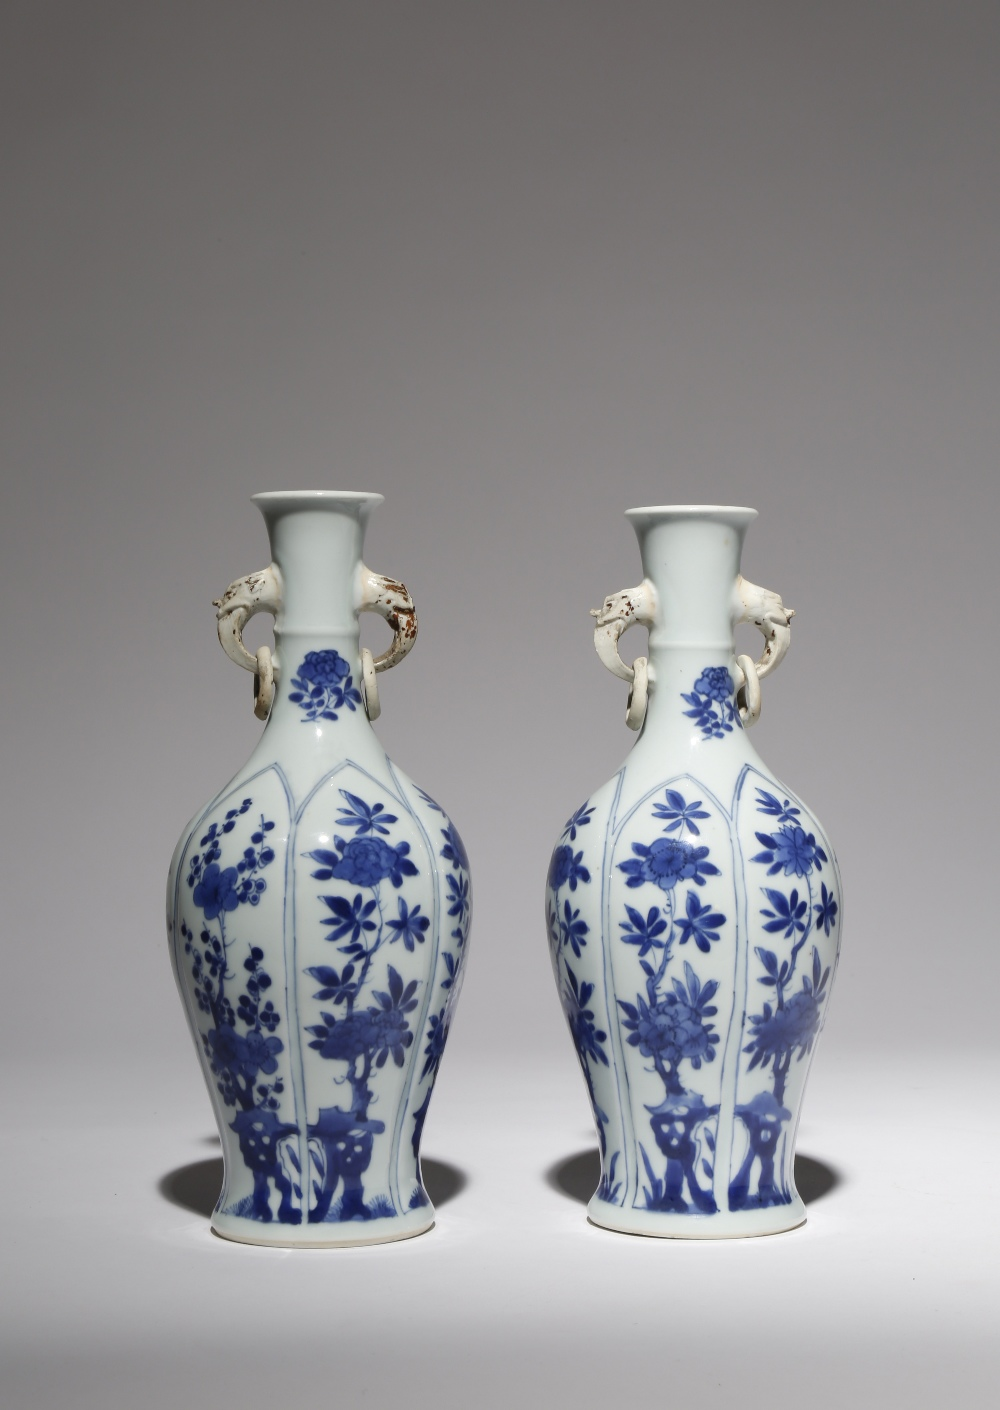 A PAIR OF CHINESE BLUE AND WHITE MOULDED VASES KANGXI 1662-1722 The ovoid bodies moulded with tall